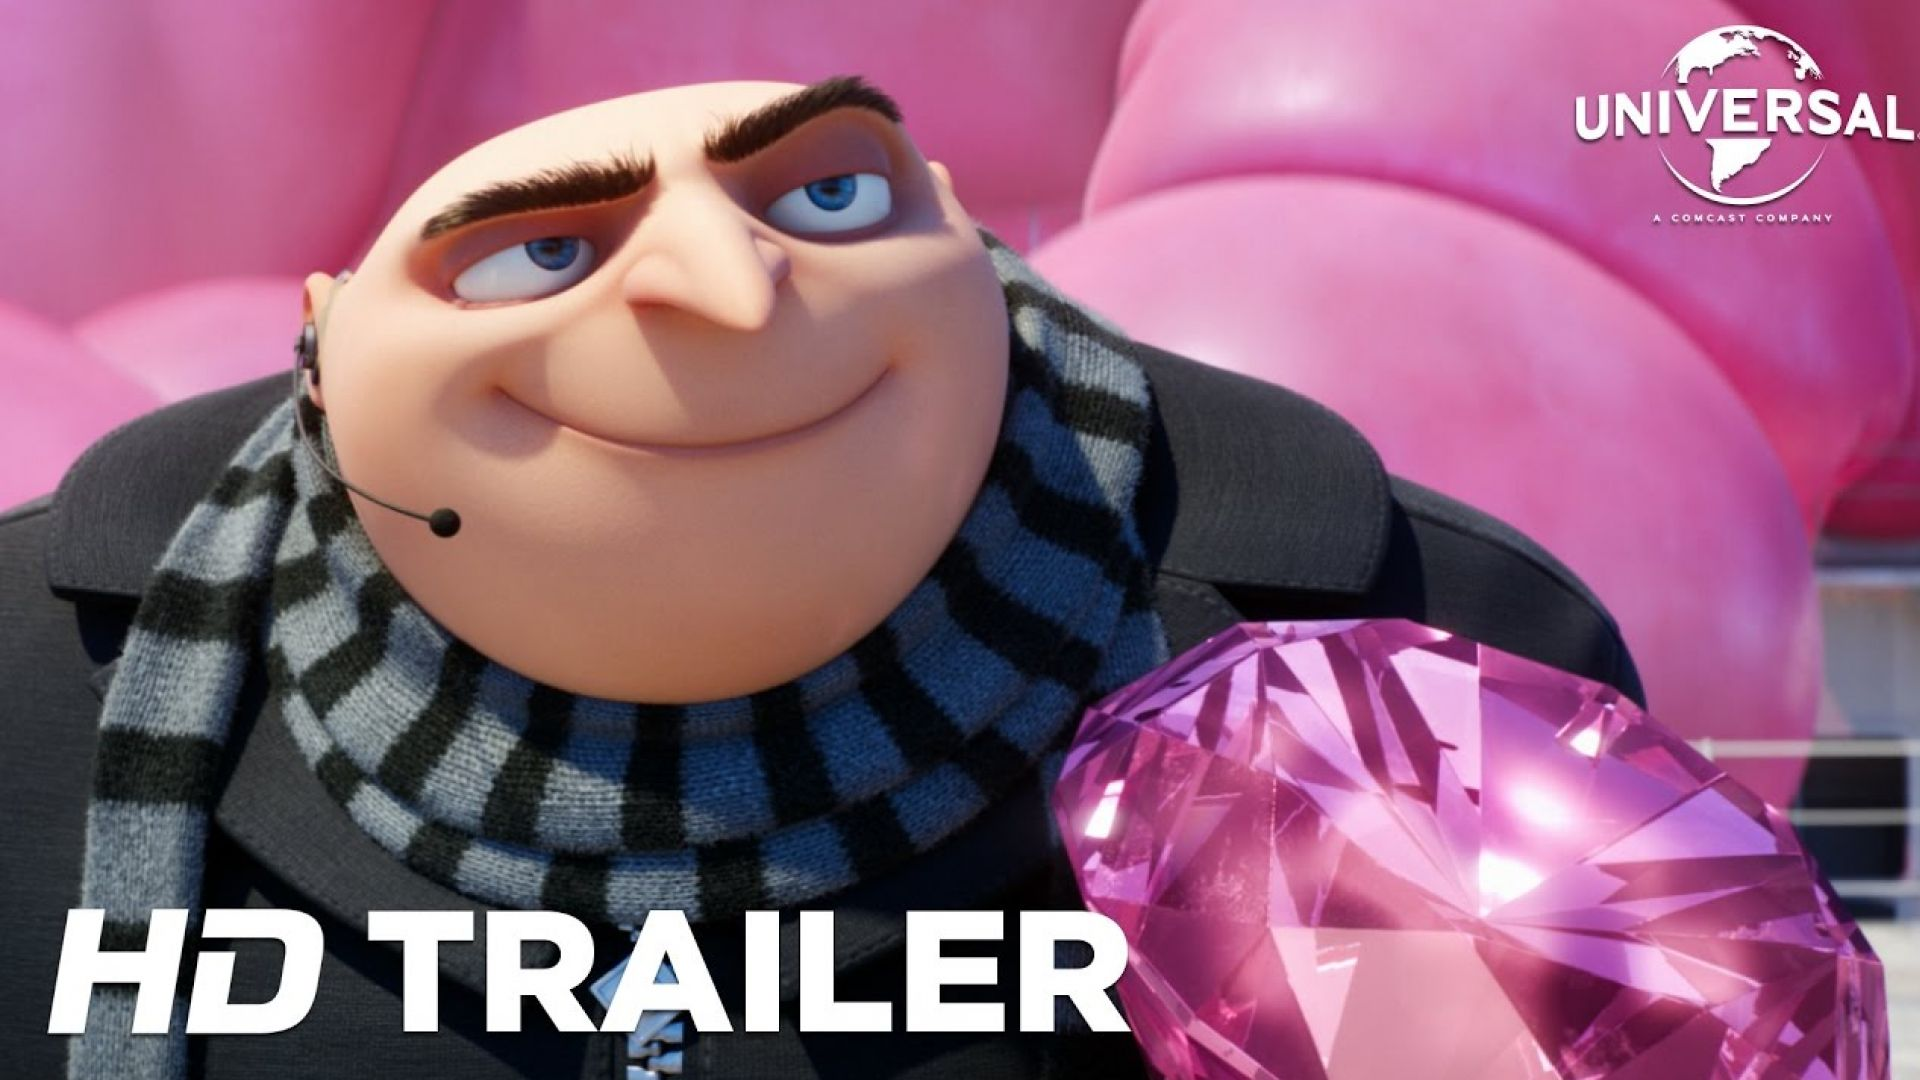 Gru is back in 'Despicable Me 3'.